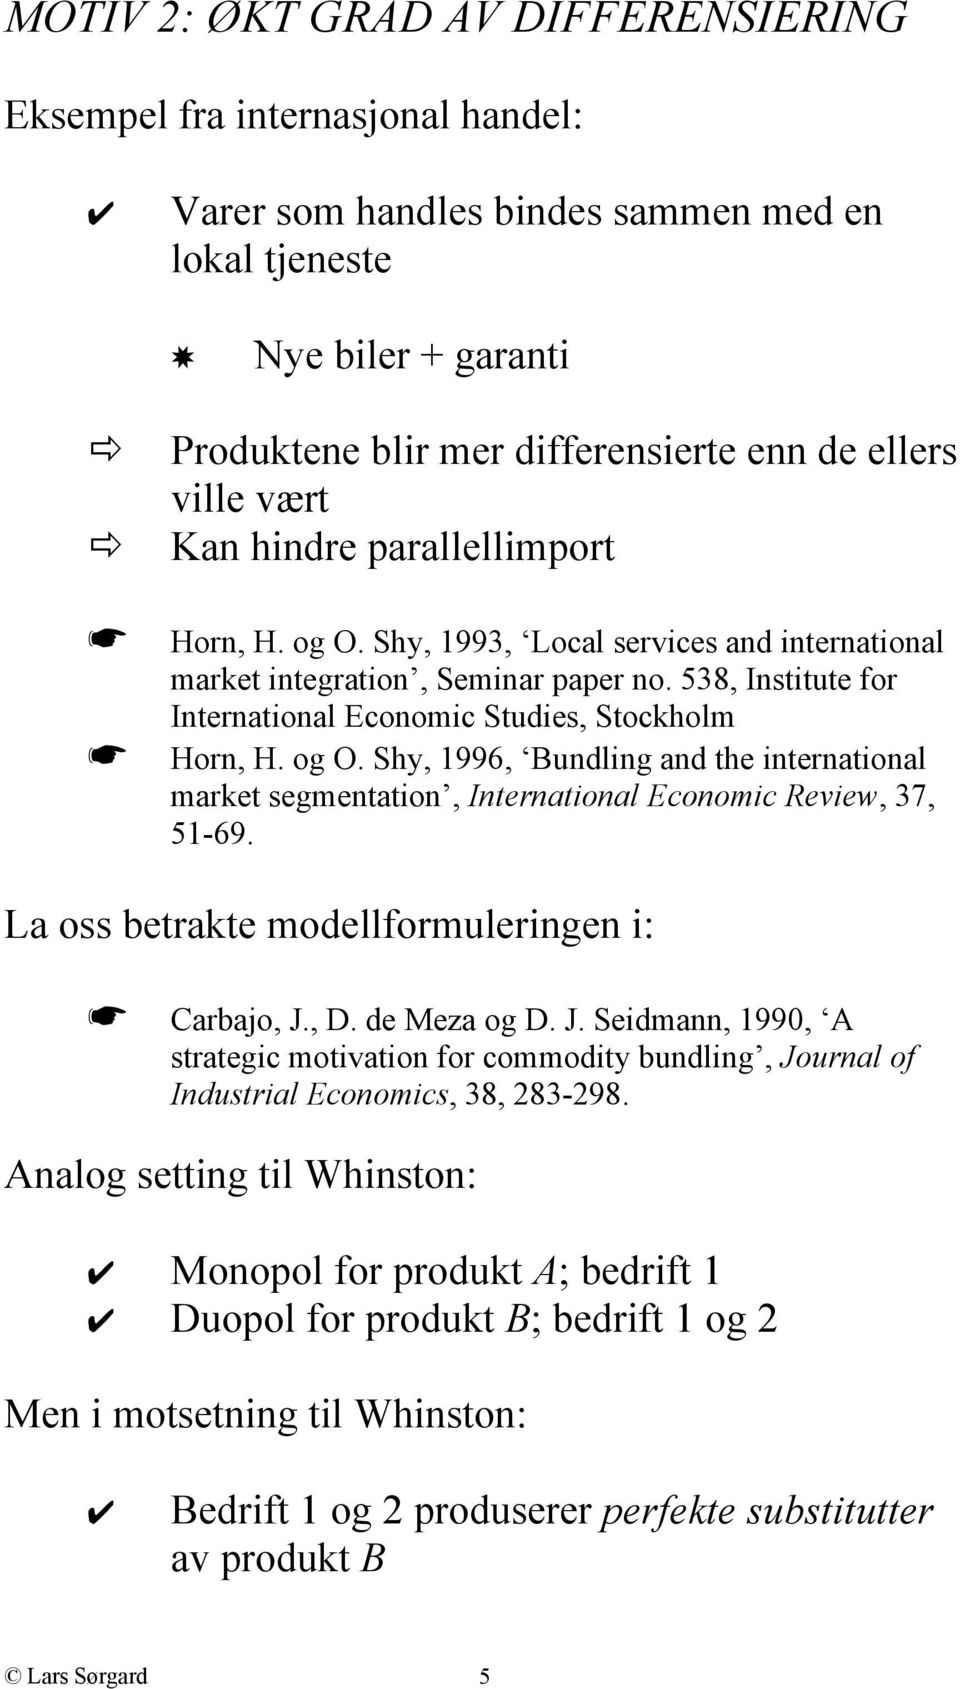 538, Institute for International Economic Studies, Stockholm Horn, H. og O. Shy, 1996, Bundling and the international market segmentation, International Economic Review, 37, 51-69.